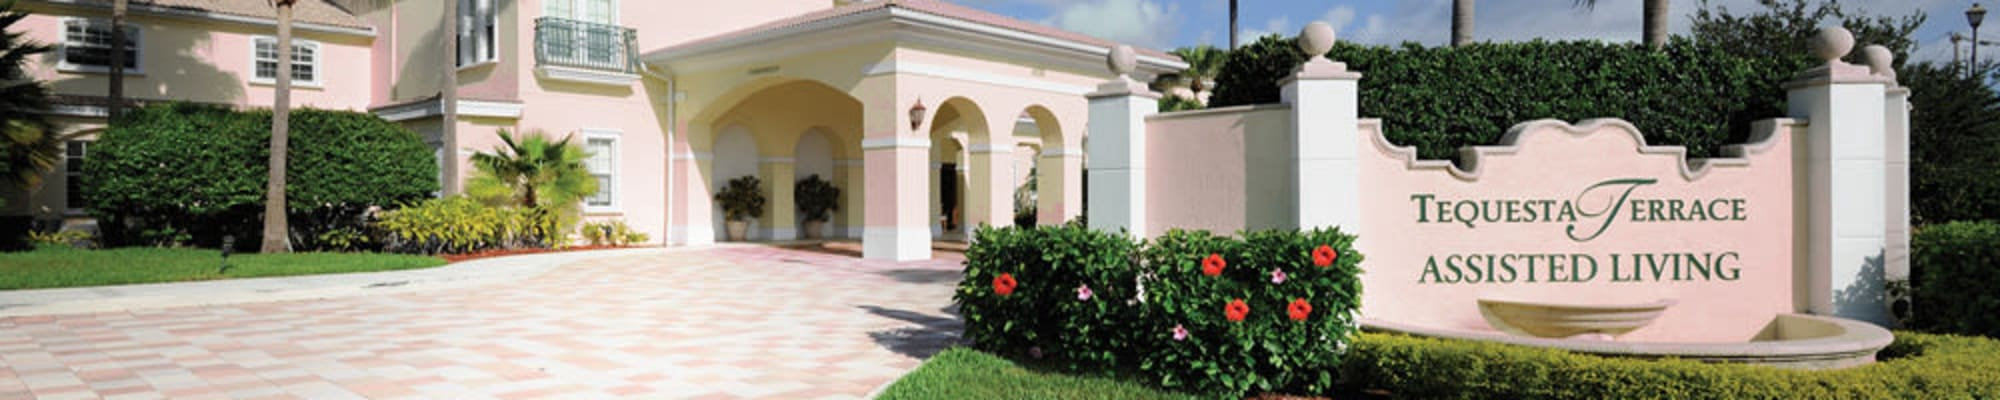 Memory care offered at Tequesta Terrace in Tequesta, Florida